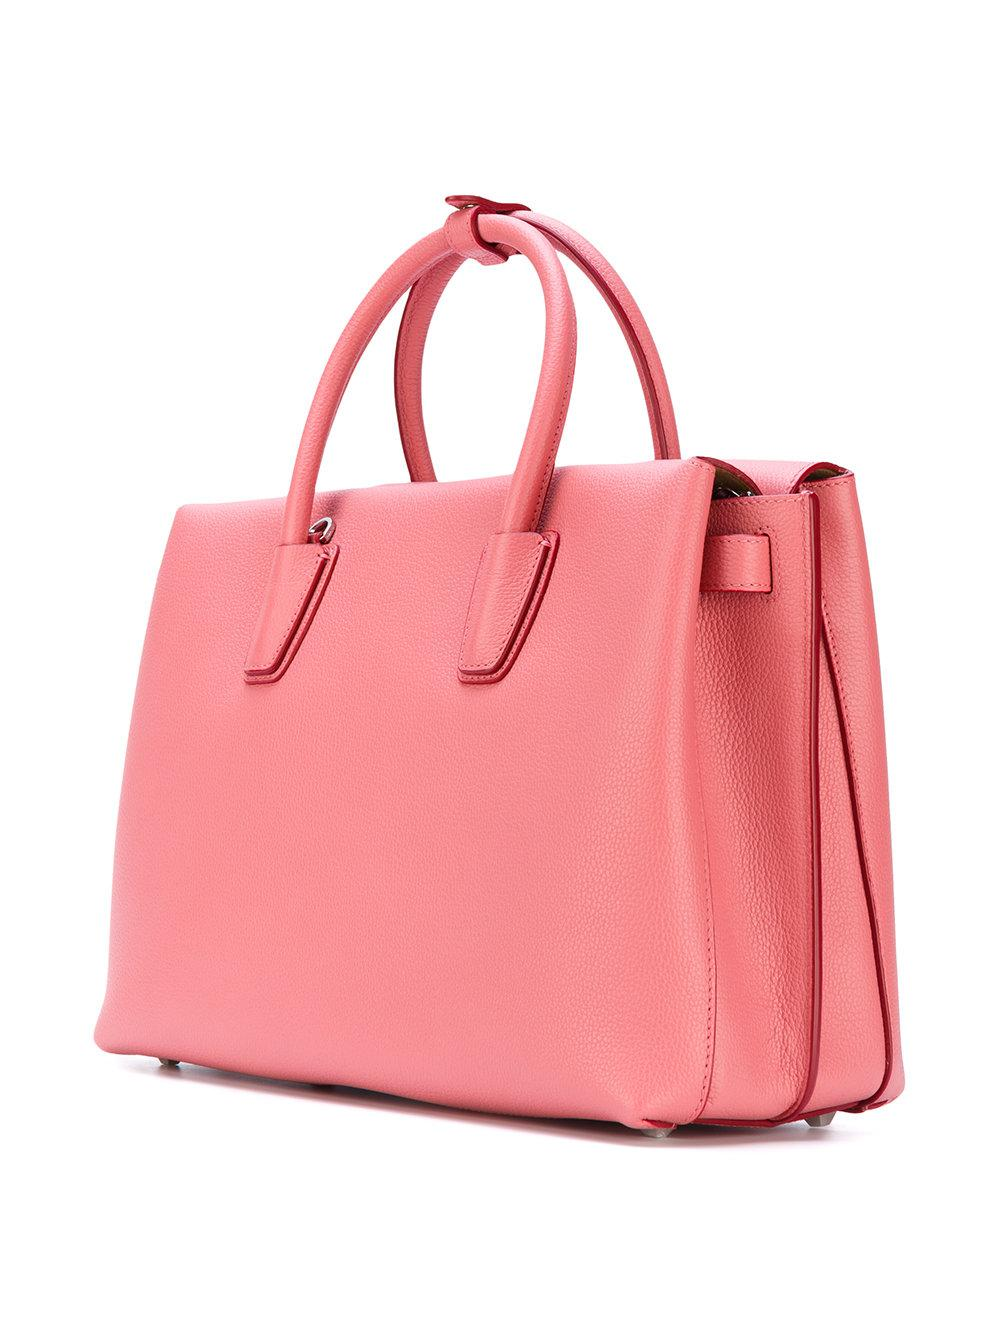 MCM Leather Large Milla Tote in Pink